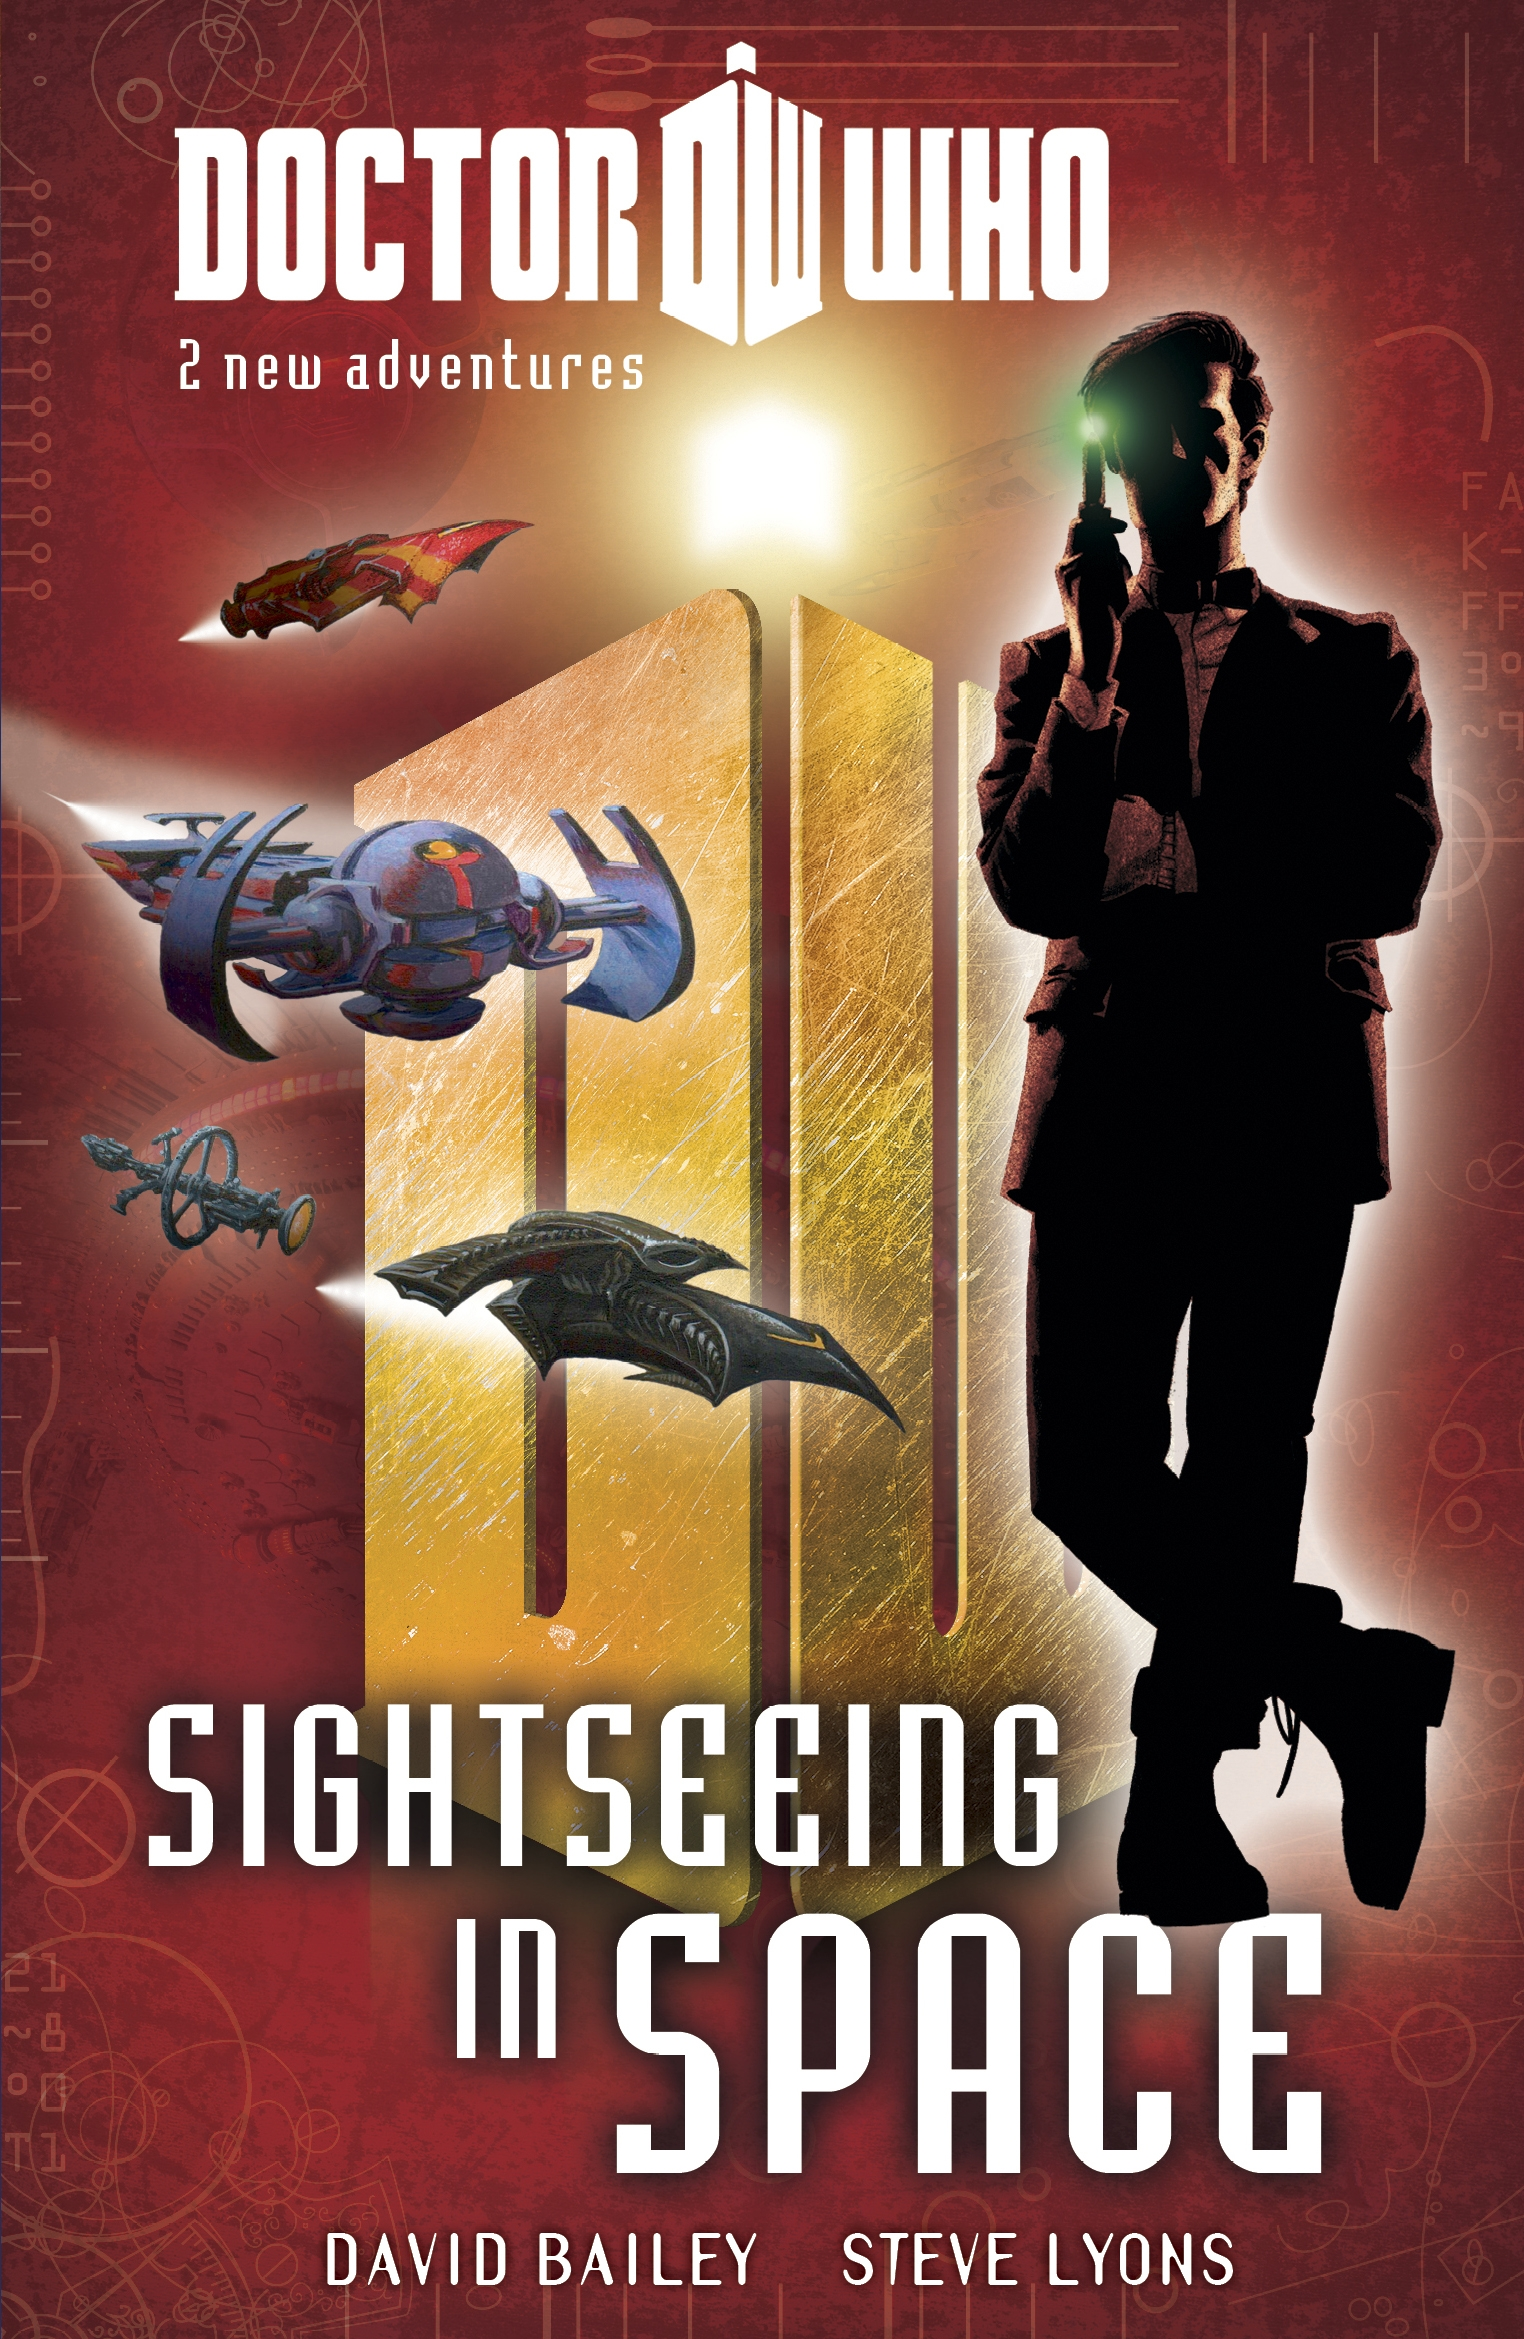 Doctor Who: Book 4: Sightseeing in Space